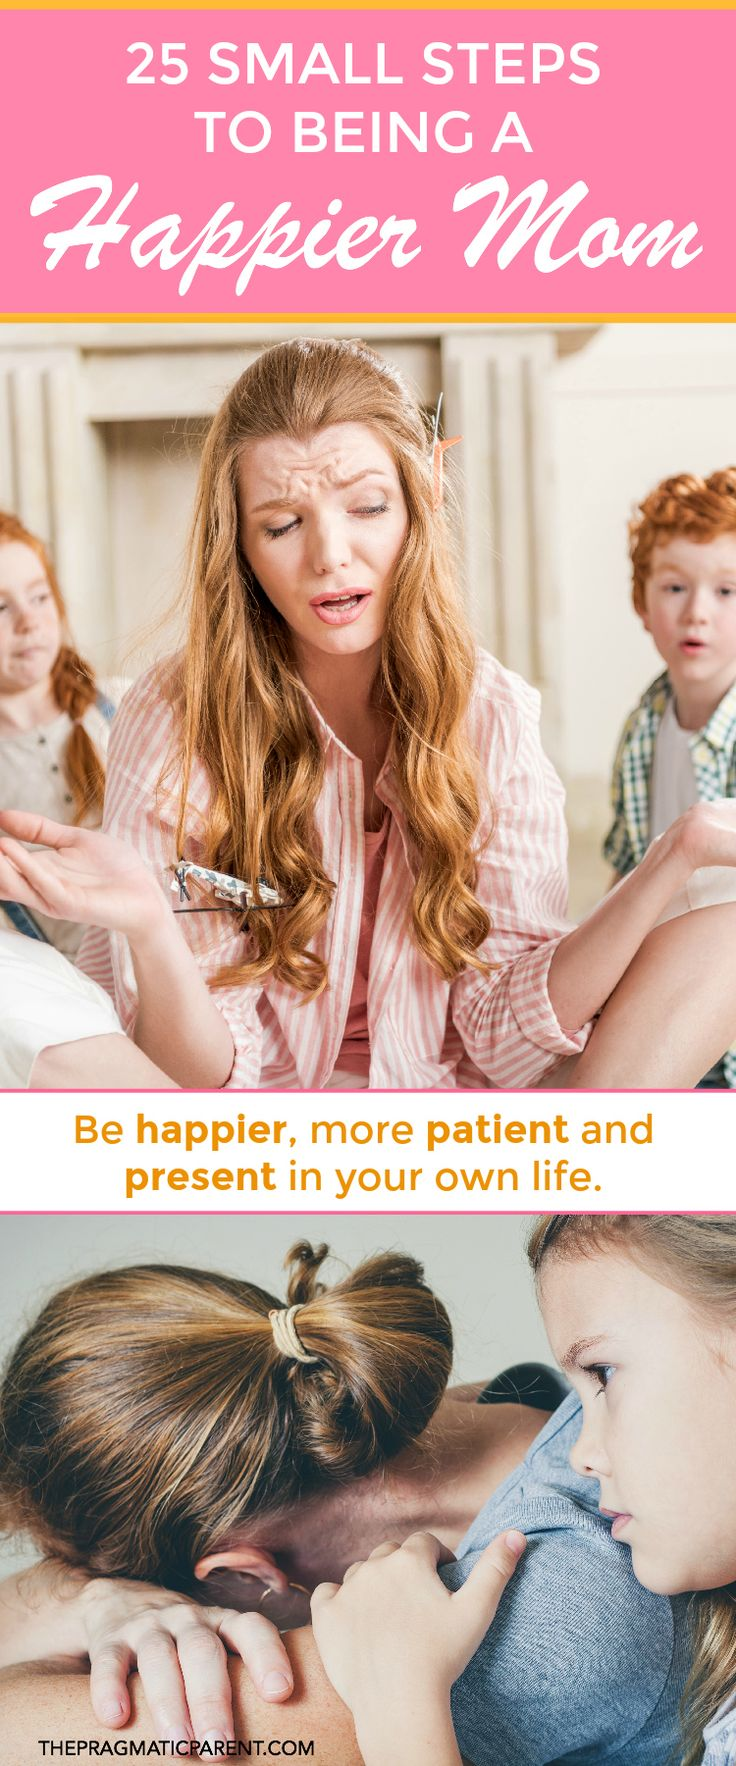 Why are you an Unhappy Mom? Sometimes we can fall into ruts of living joylessly as a Mom but if you make positive changes and change these 25 habits, you can reclaim the joy of motherhood and stop being an unhappy mom.